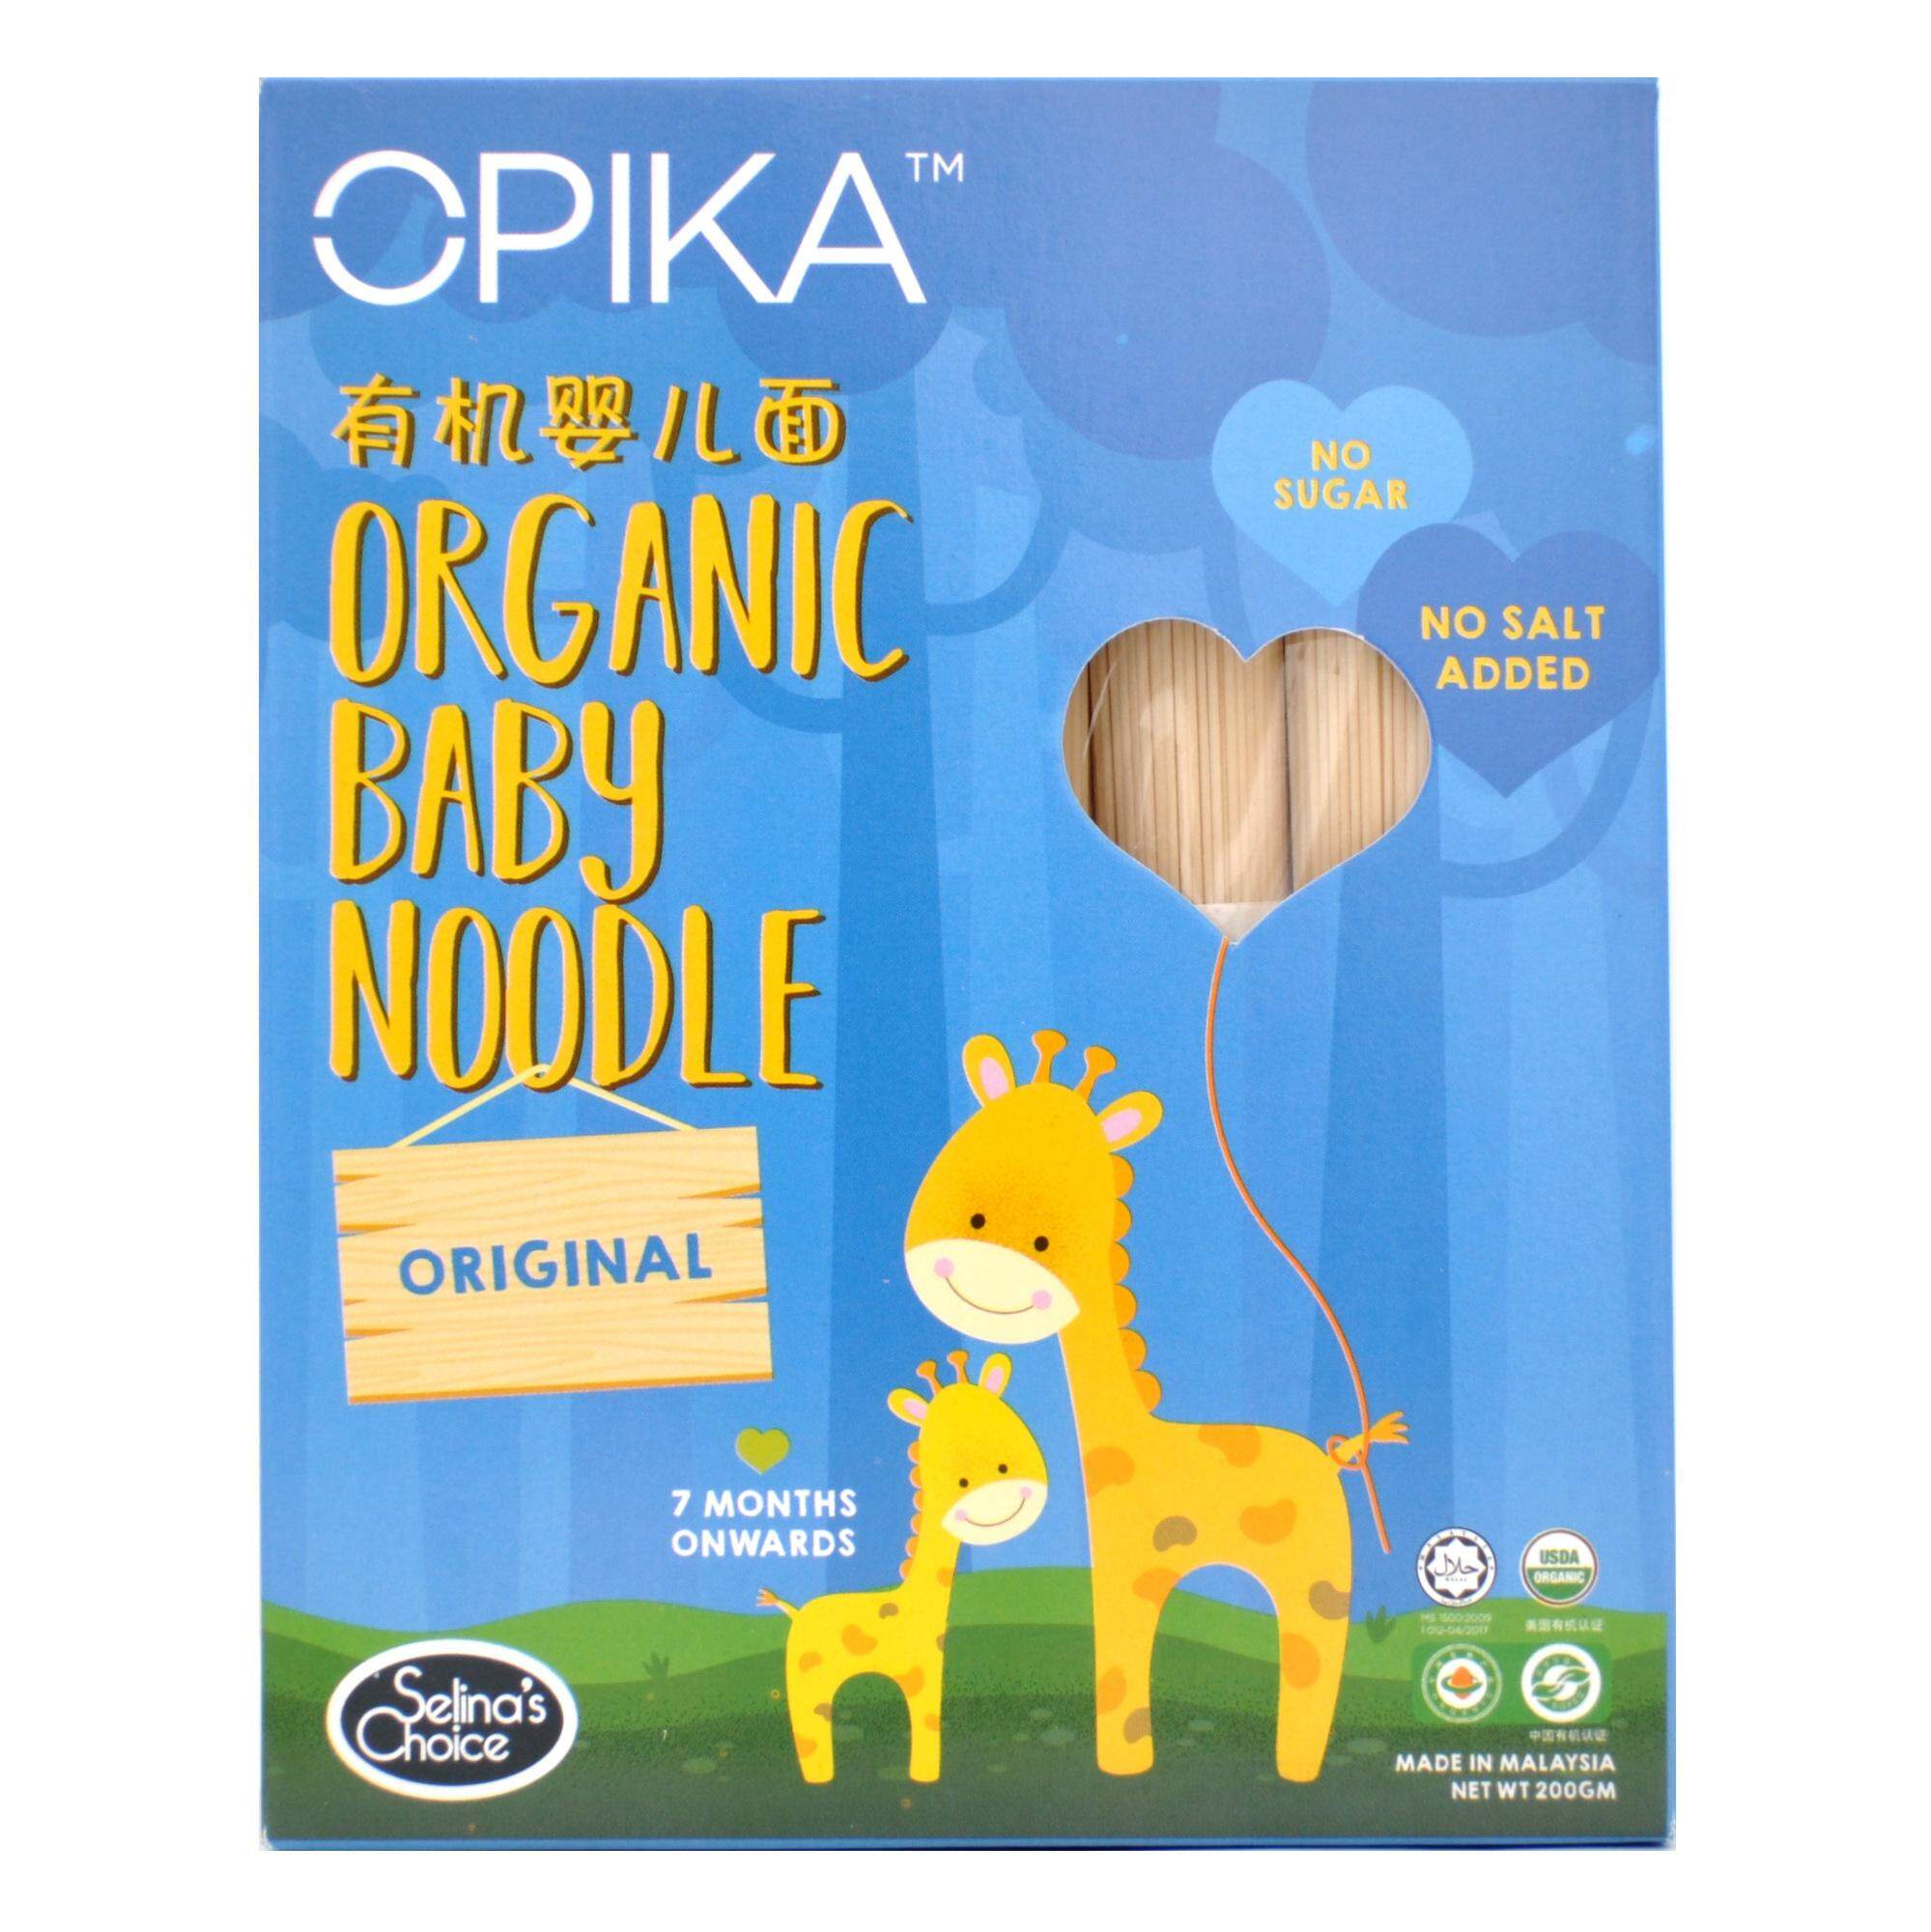 OPIKA Organic Baby Noodle, Original - 7 months onwards, 200gm